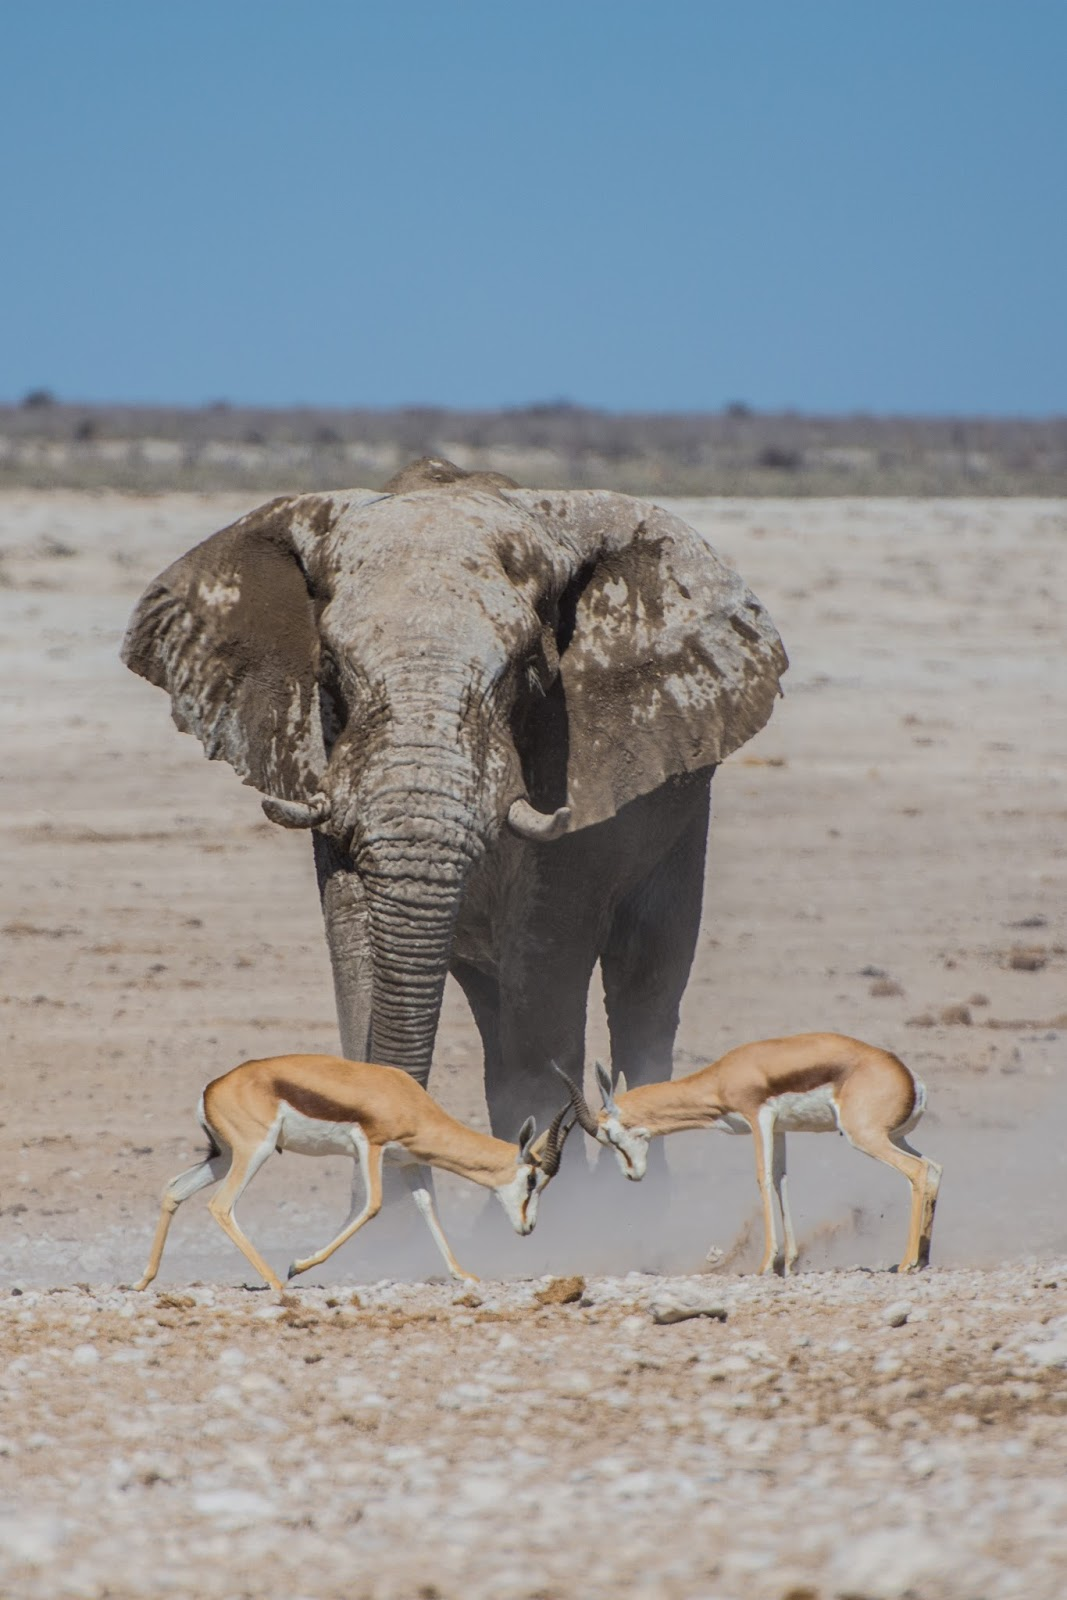 A funny picture of an elephant and gazelles.